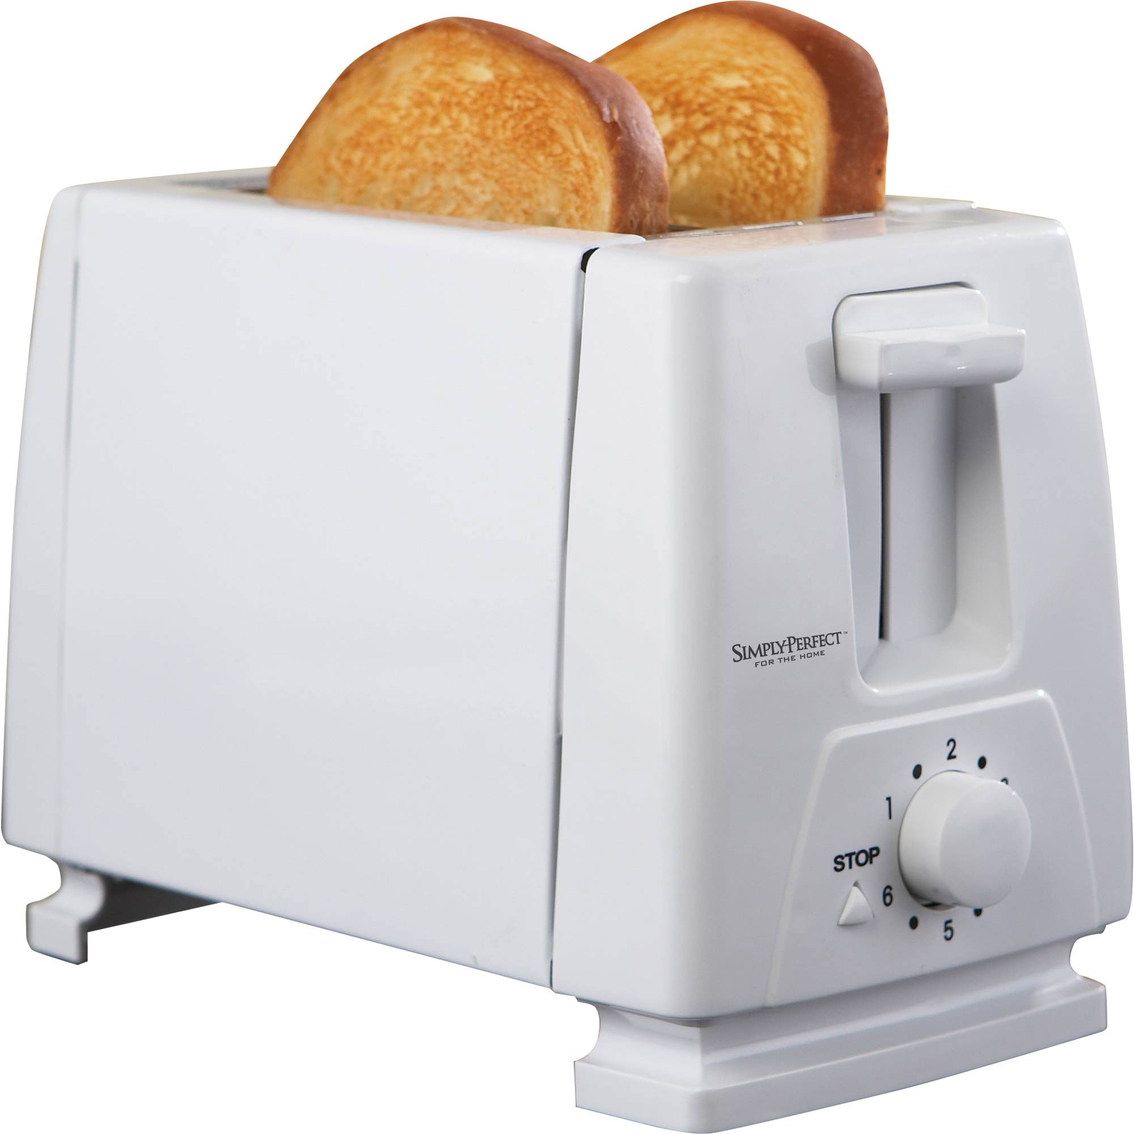 Simply Perfect 2 Slice Toaster Toasters & Ovens